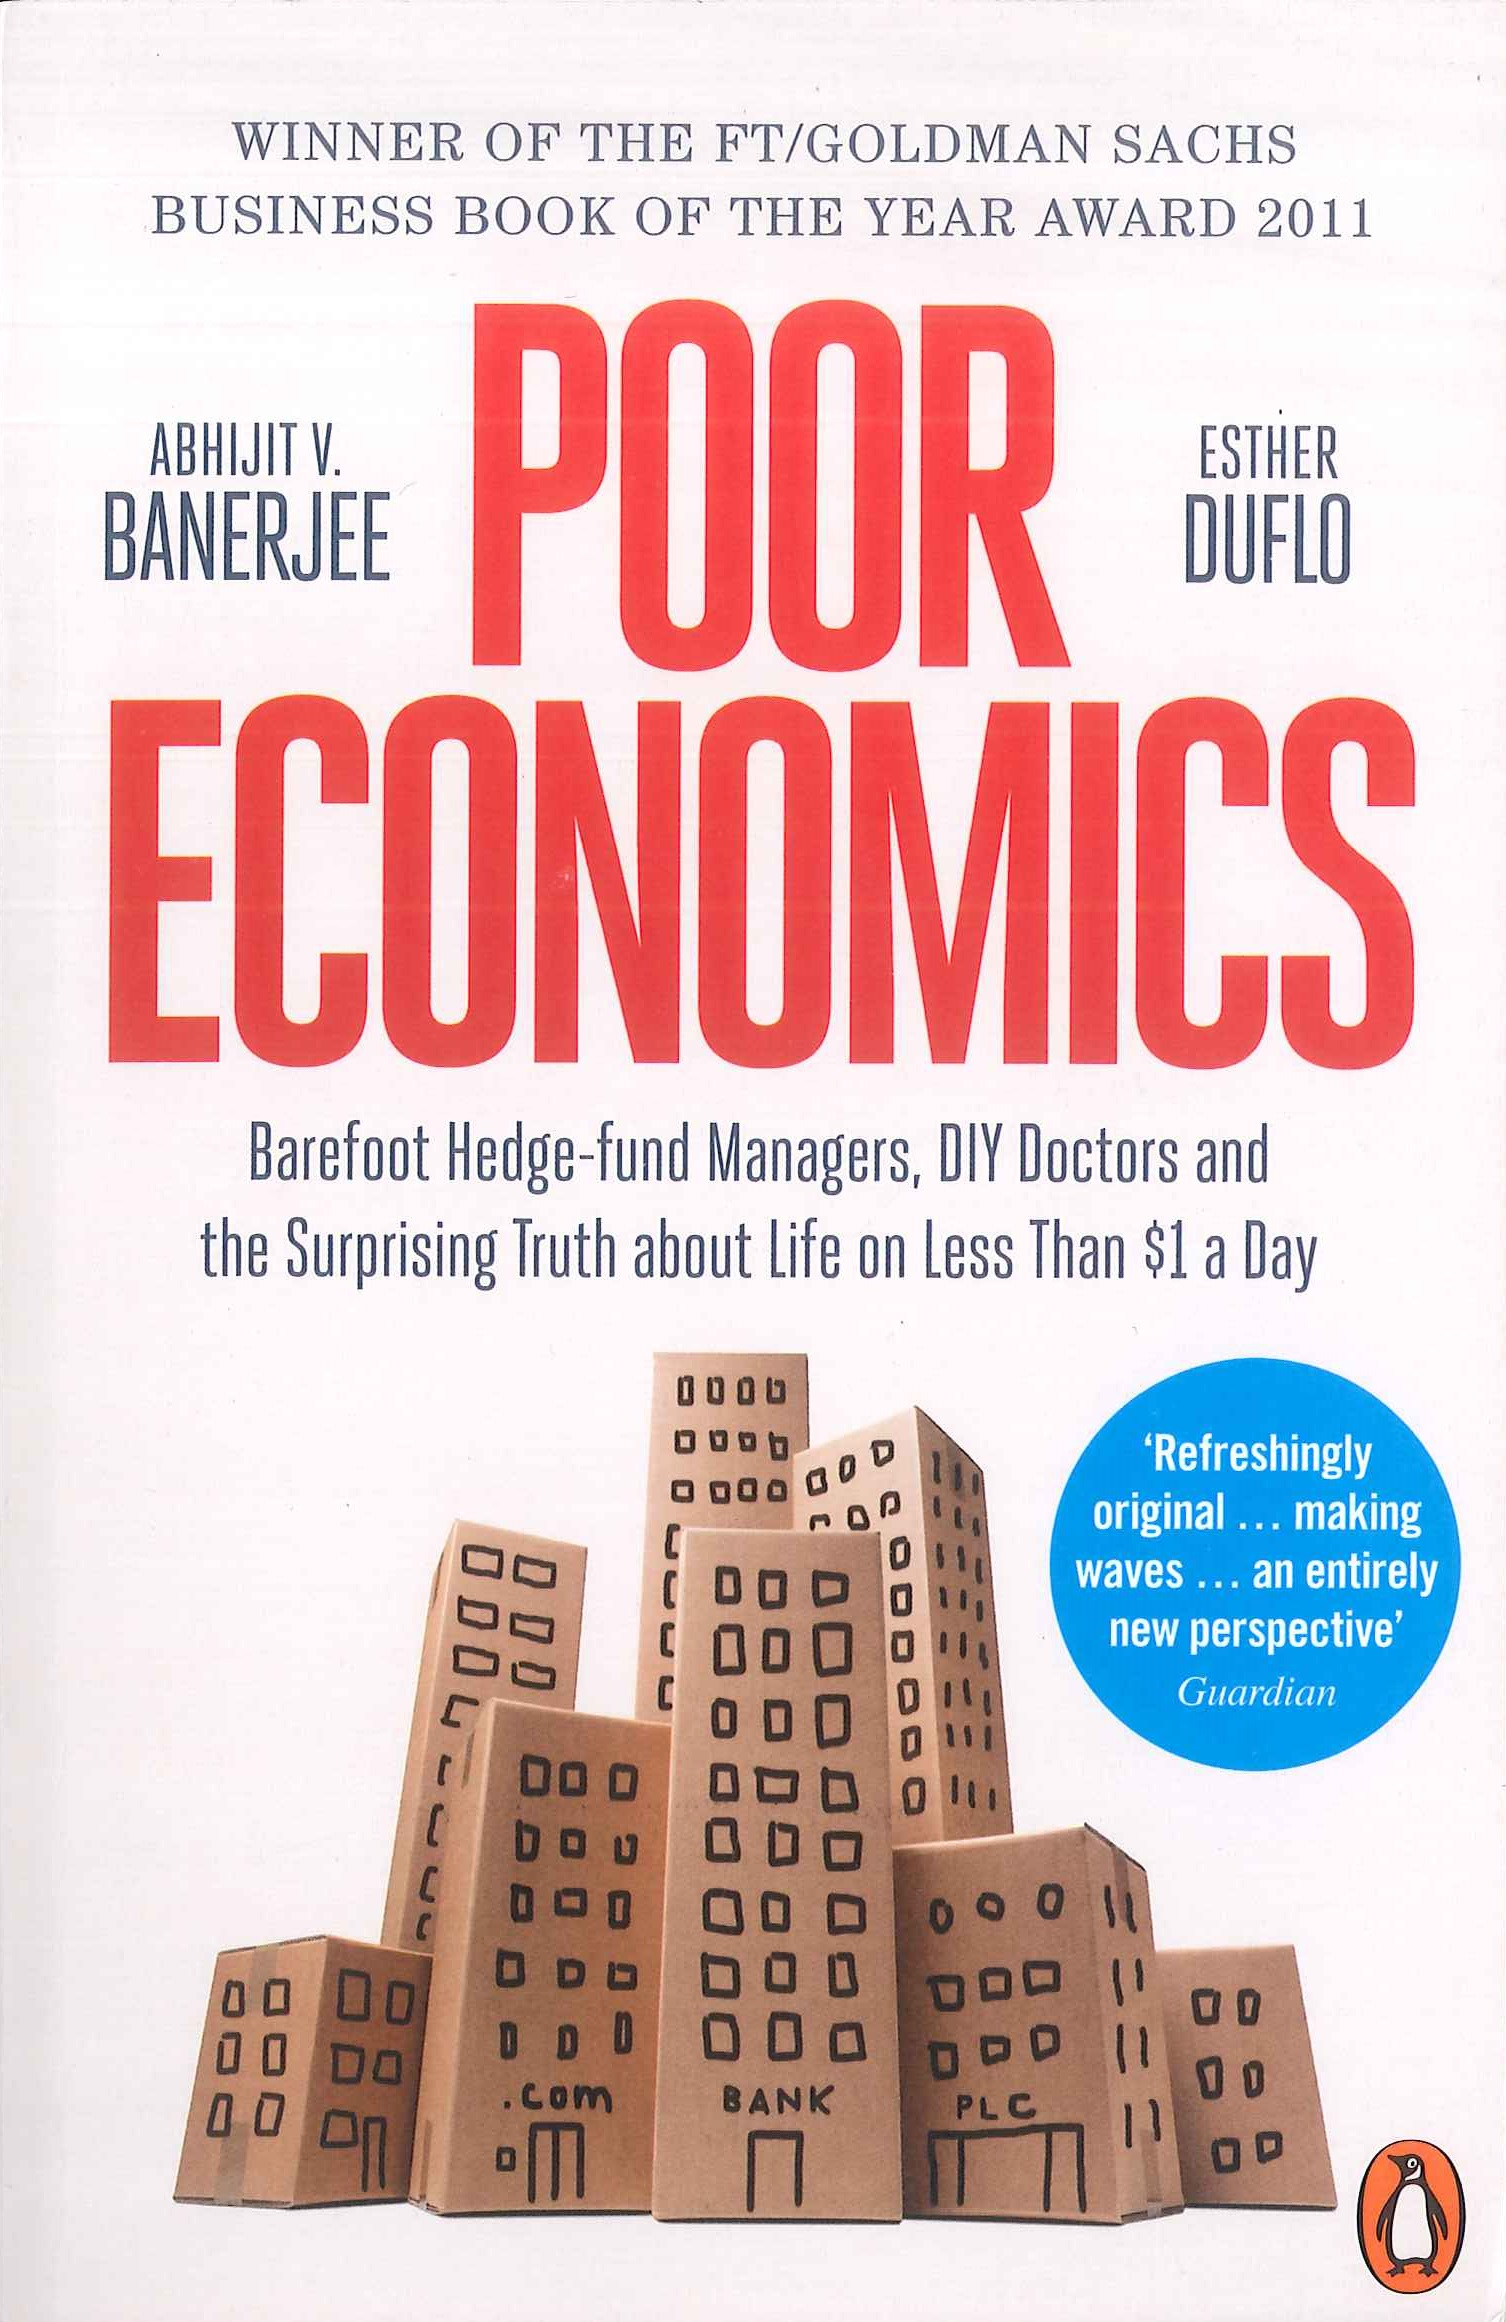 Poor economics:barefoot hedge-fund managers, DIY doctors and the surprising truth about life on less than $1 a day